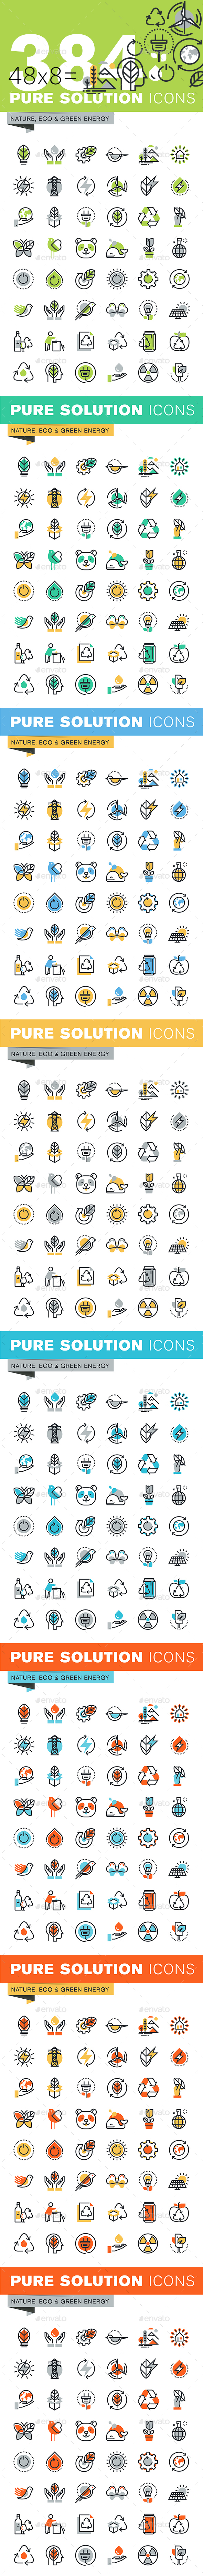 Set of Thin Line Flat Design Icons of Environment and Green Technology - Icons